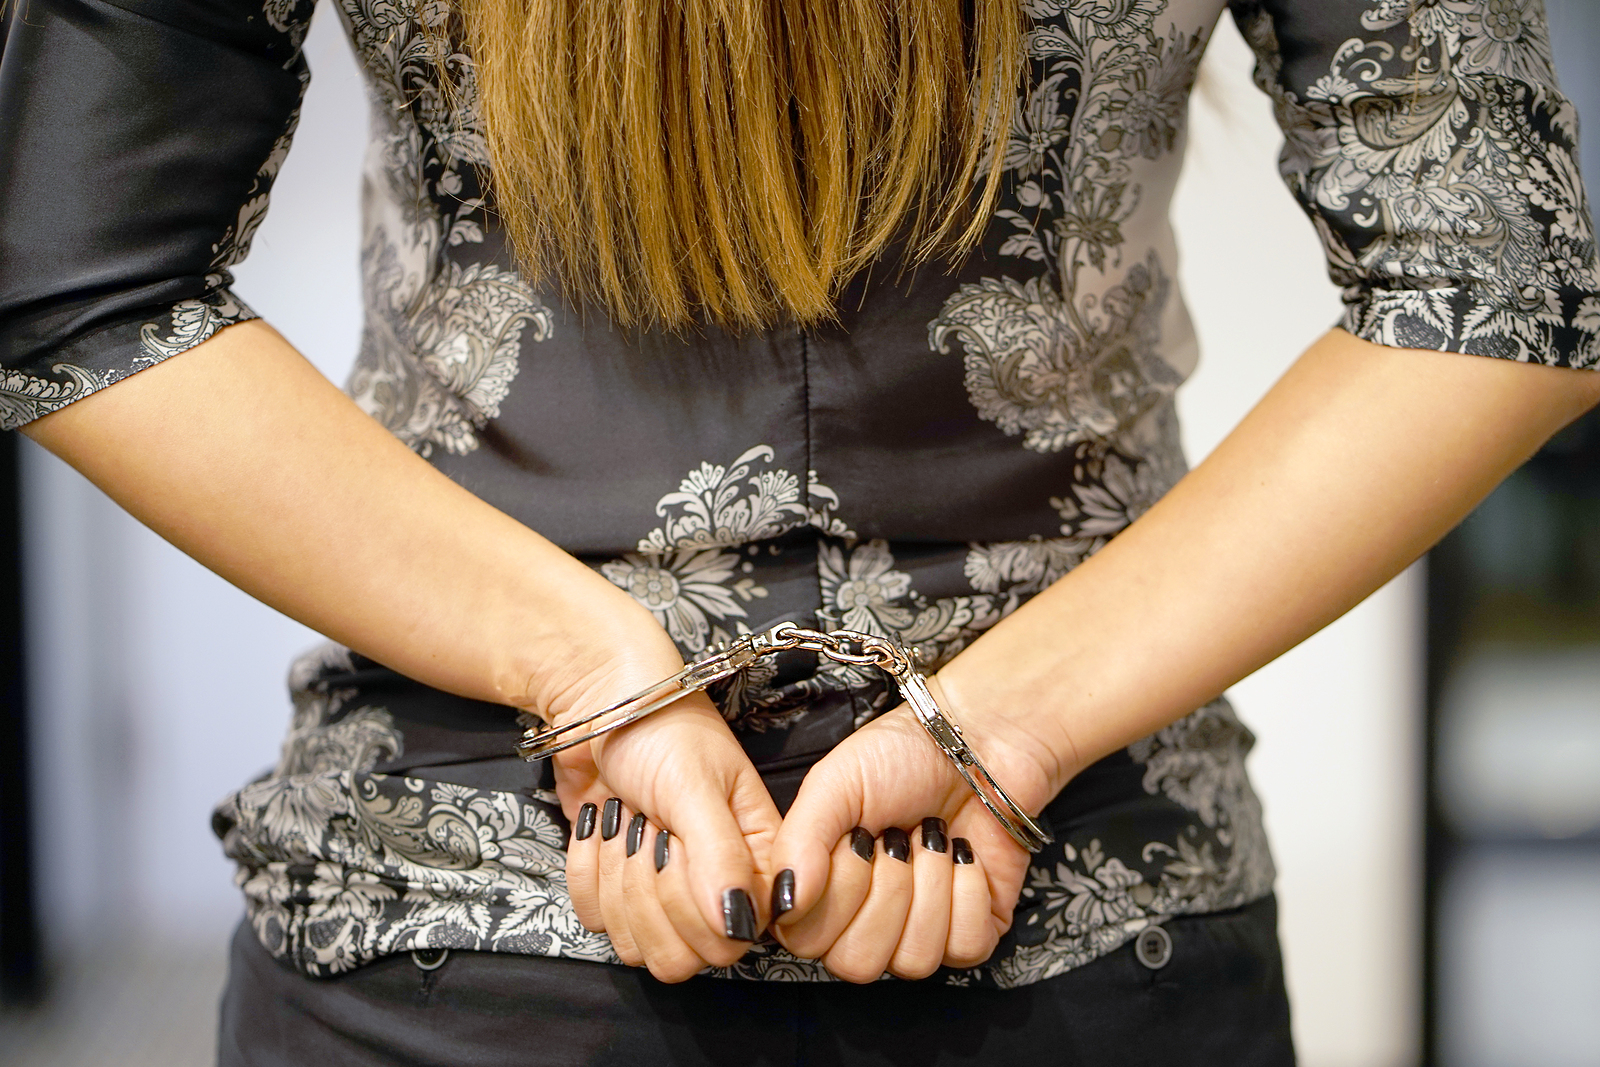 Is is false arrest? Here's how to tell if your rights have been violated in Denver